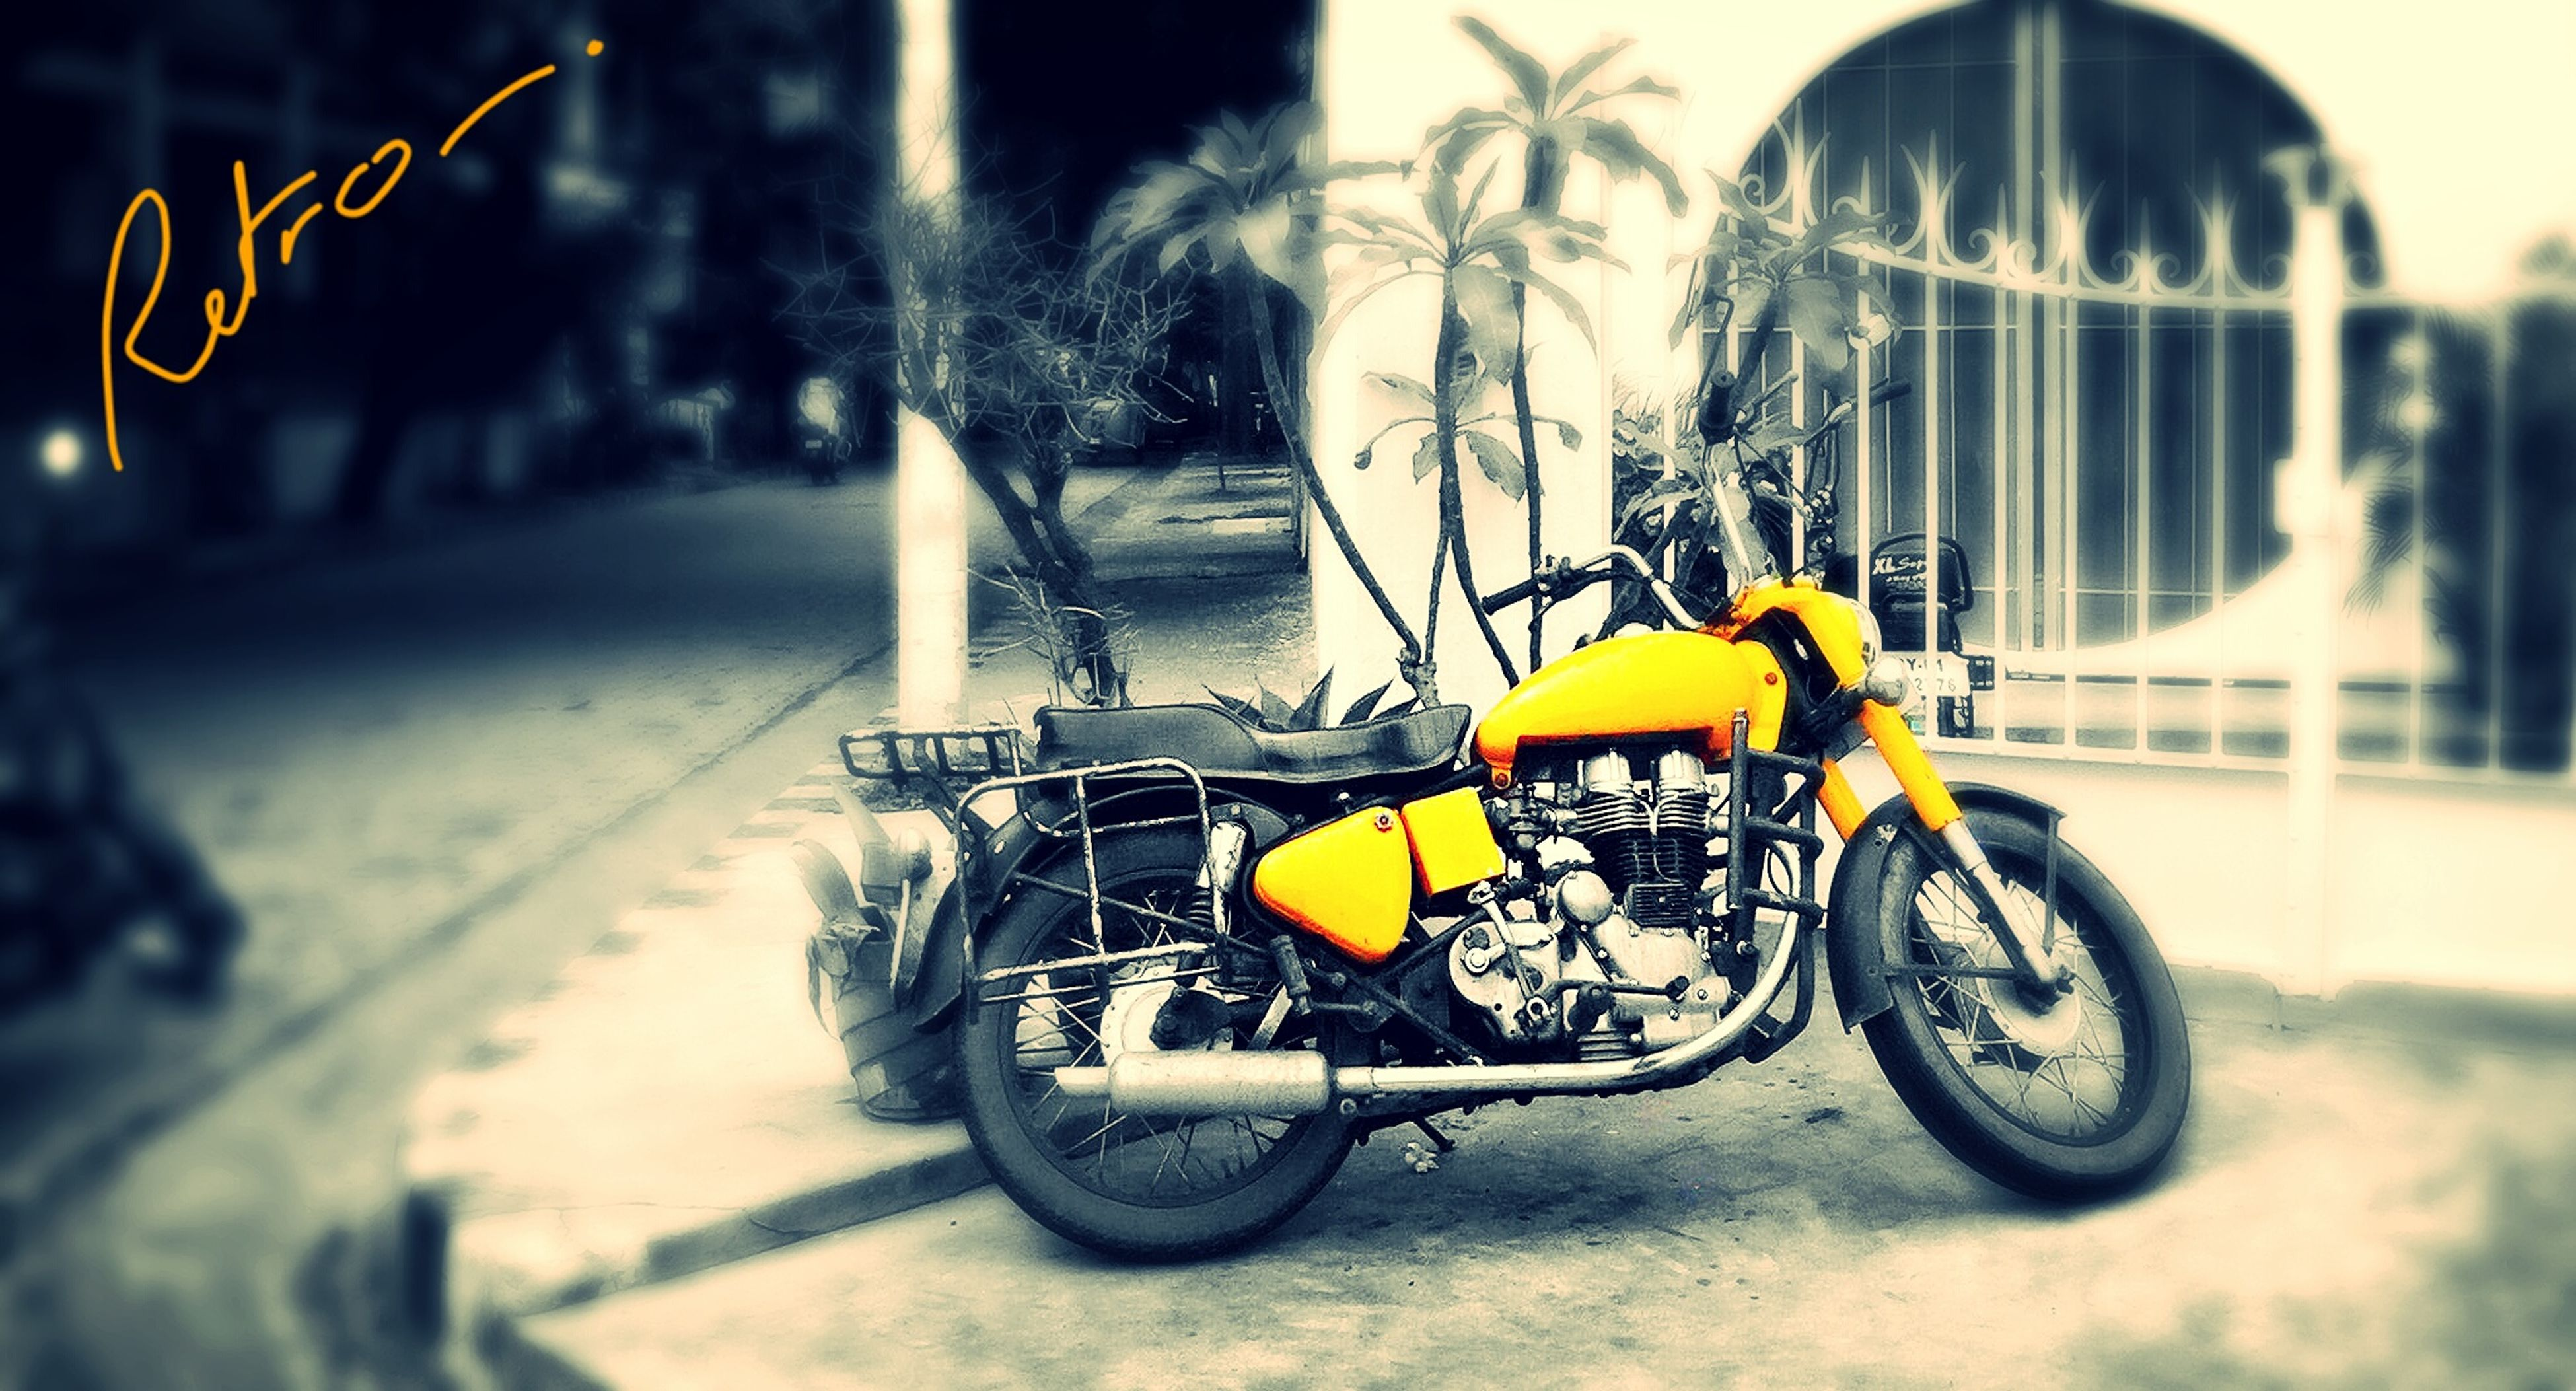 bicycle, transportation, mode of transport, land vehicle, stationary, parked, parking, street, road, yellow, cycle, motorcycle, car, riding, day, outdoors, side view, no people, building exterior, focus on foreground